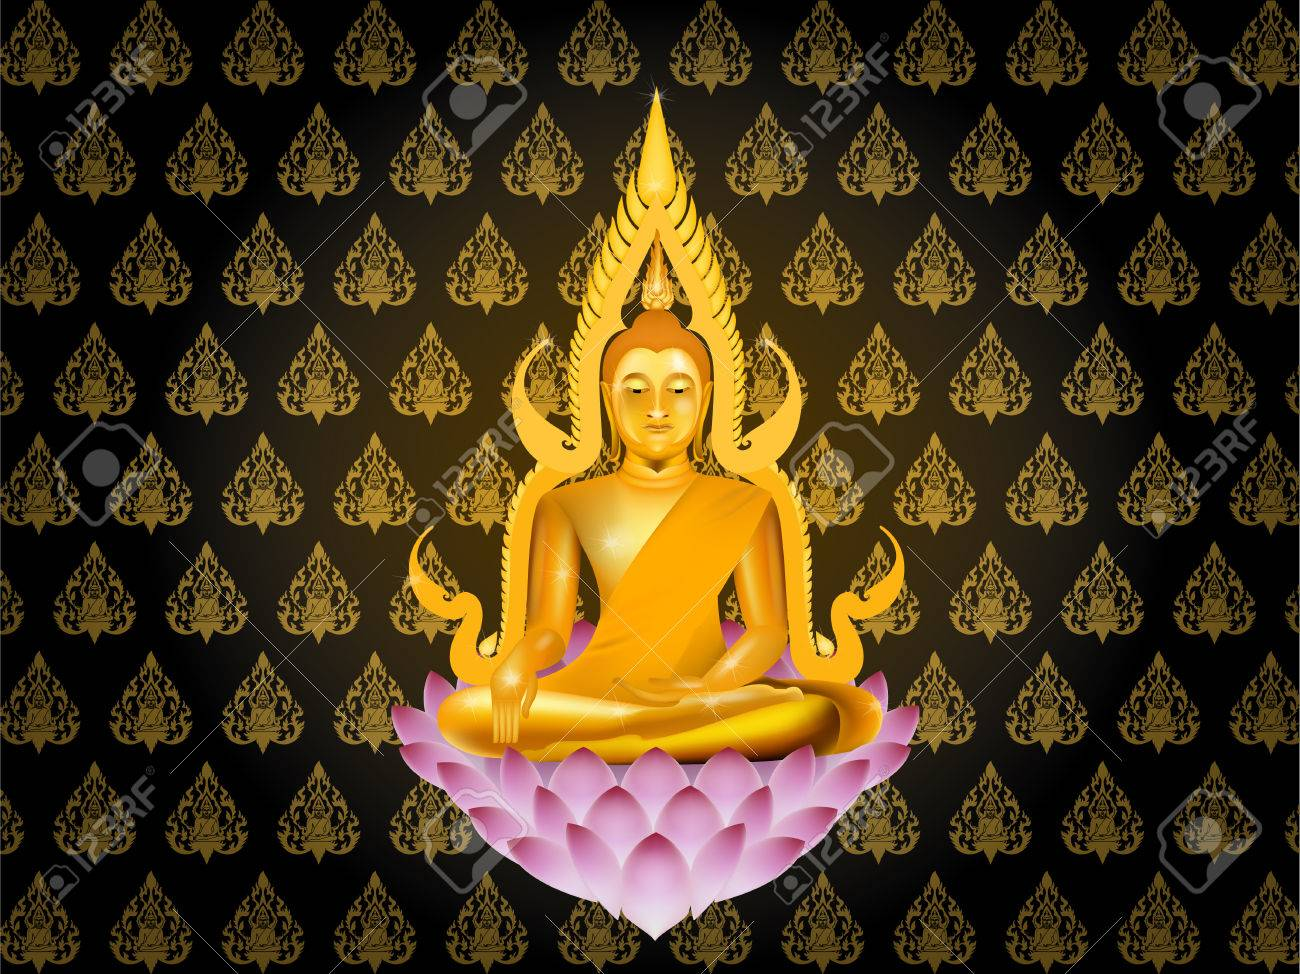 buddha sitting on lotus on thai texture style background, buddhism wallpaper background illustration vector graphic